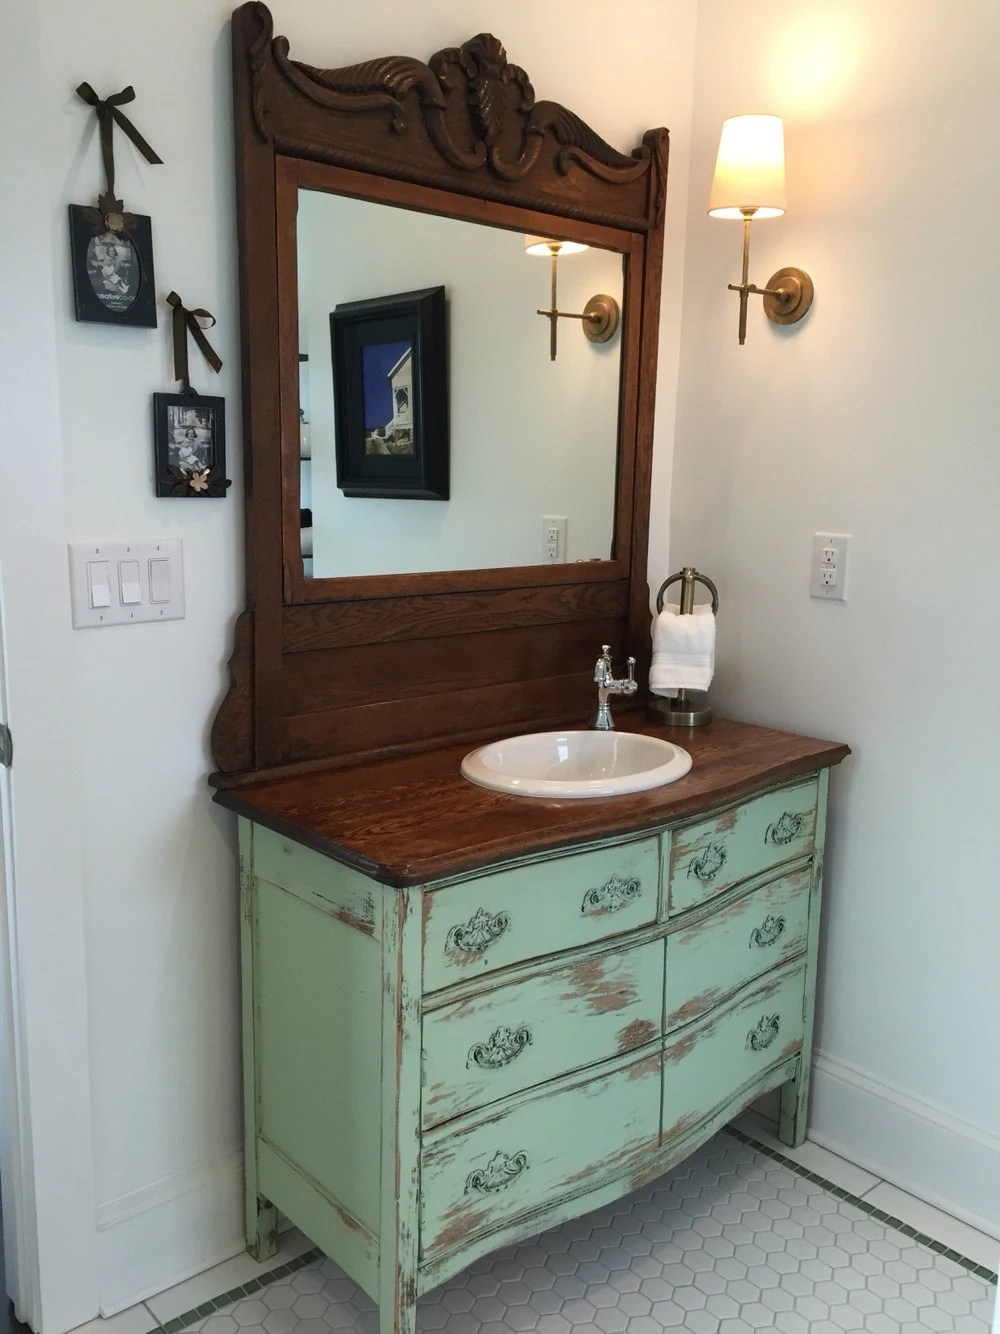 bathroom vanity antique rustic from antique dresser 37 to 48 we find restore convert paint and distress country furniture